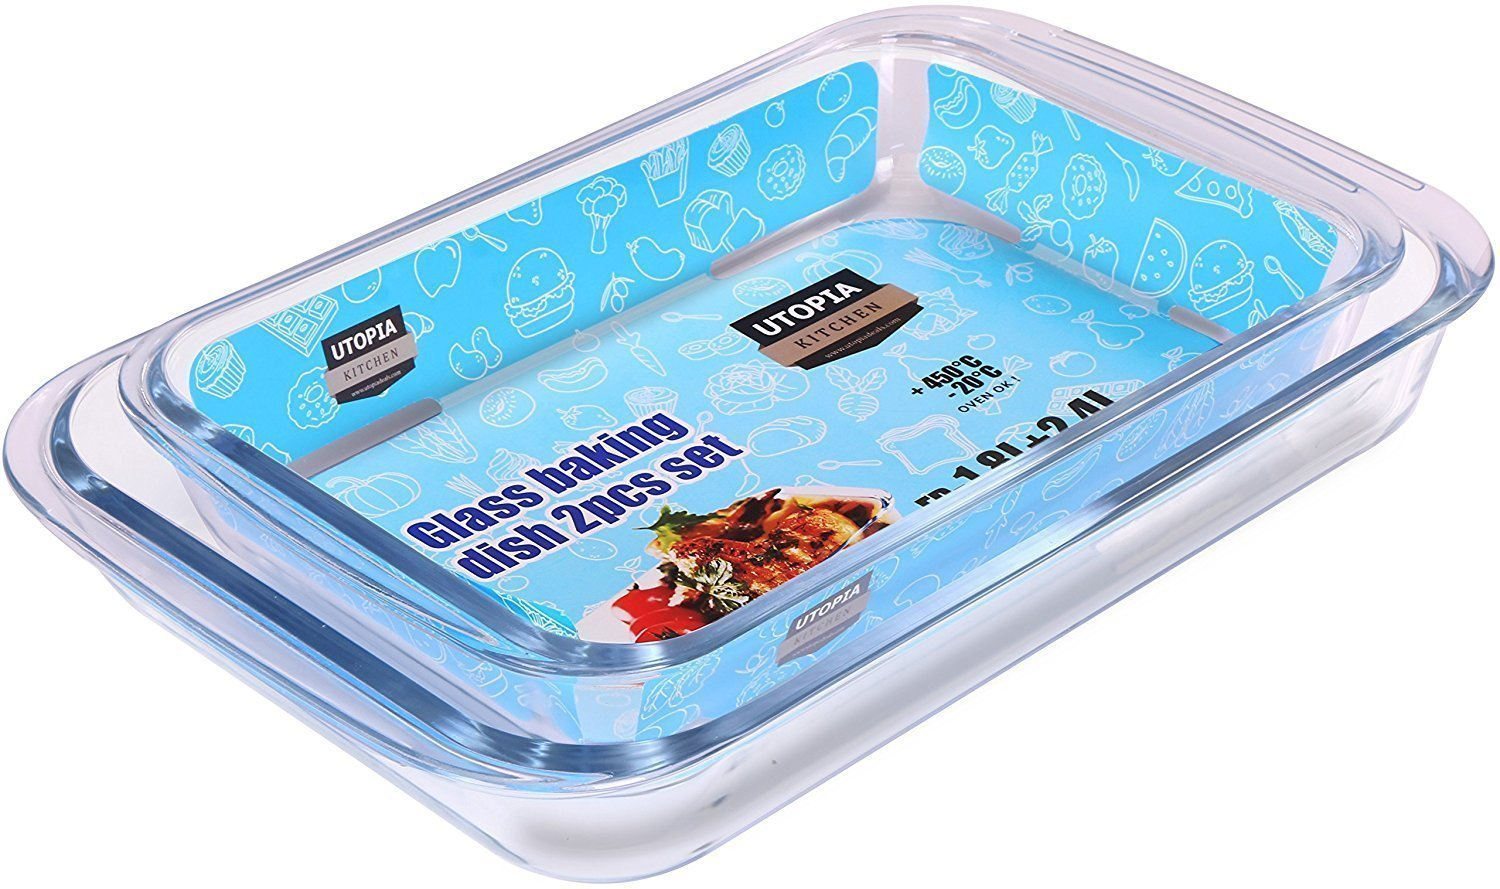 Borosilicate Glass Oblong Baking Dishes 2-Pack Glass Bakeware - 1.8L (11.6 x 7.1 x 2 Inch) & 2.4L (13.5 x 8.2 x 2 Inch) - Dishwasher Safe & Oven-Friendly- By Utopia Kitchen UK0260